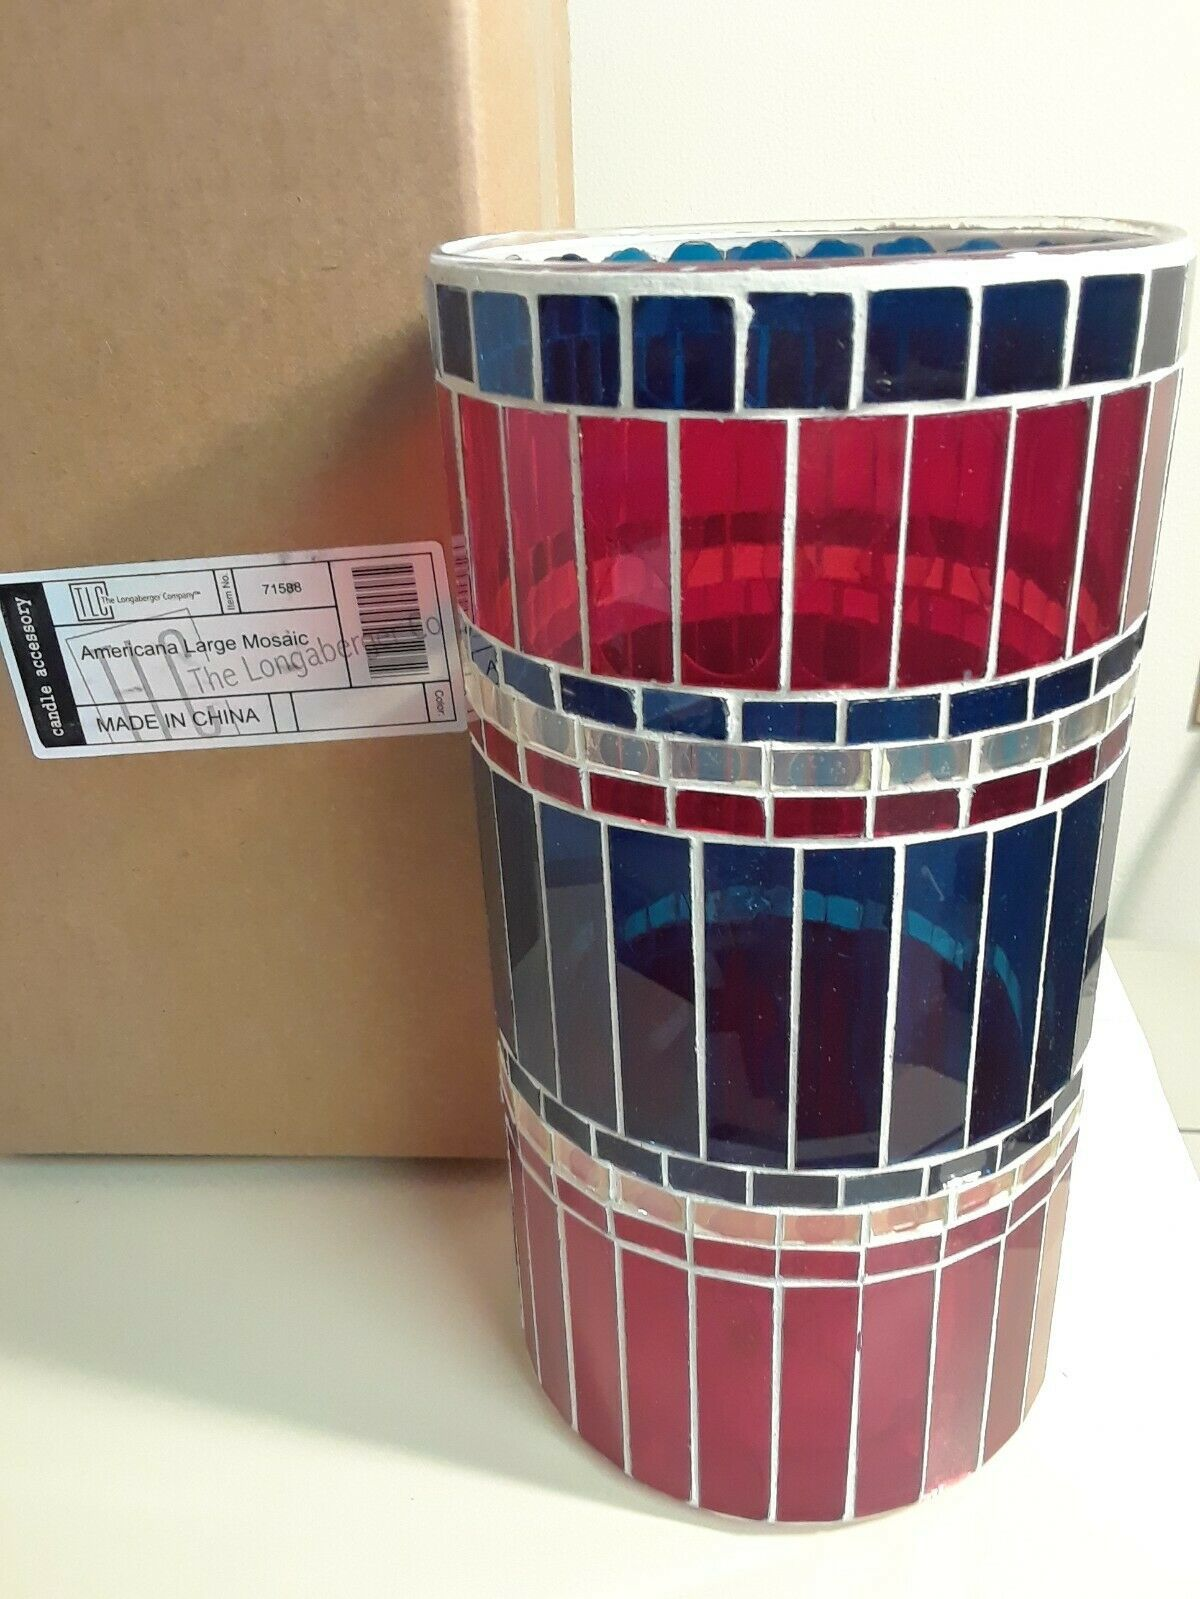 Primary image for Longaberger Americana Large Mosaic Candle Holder Red White Blue